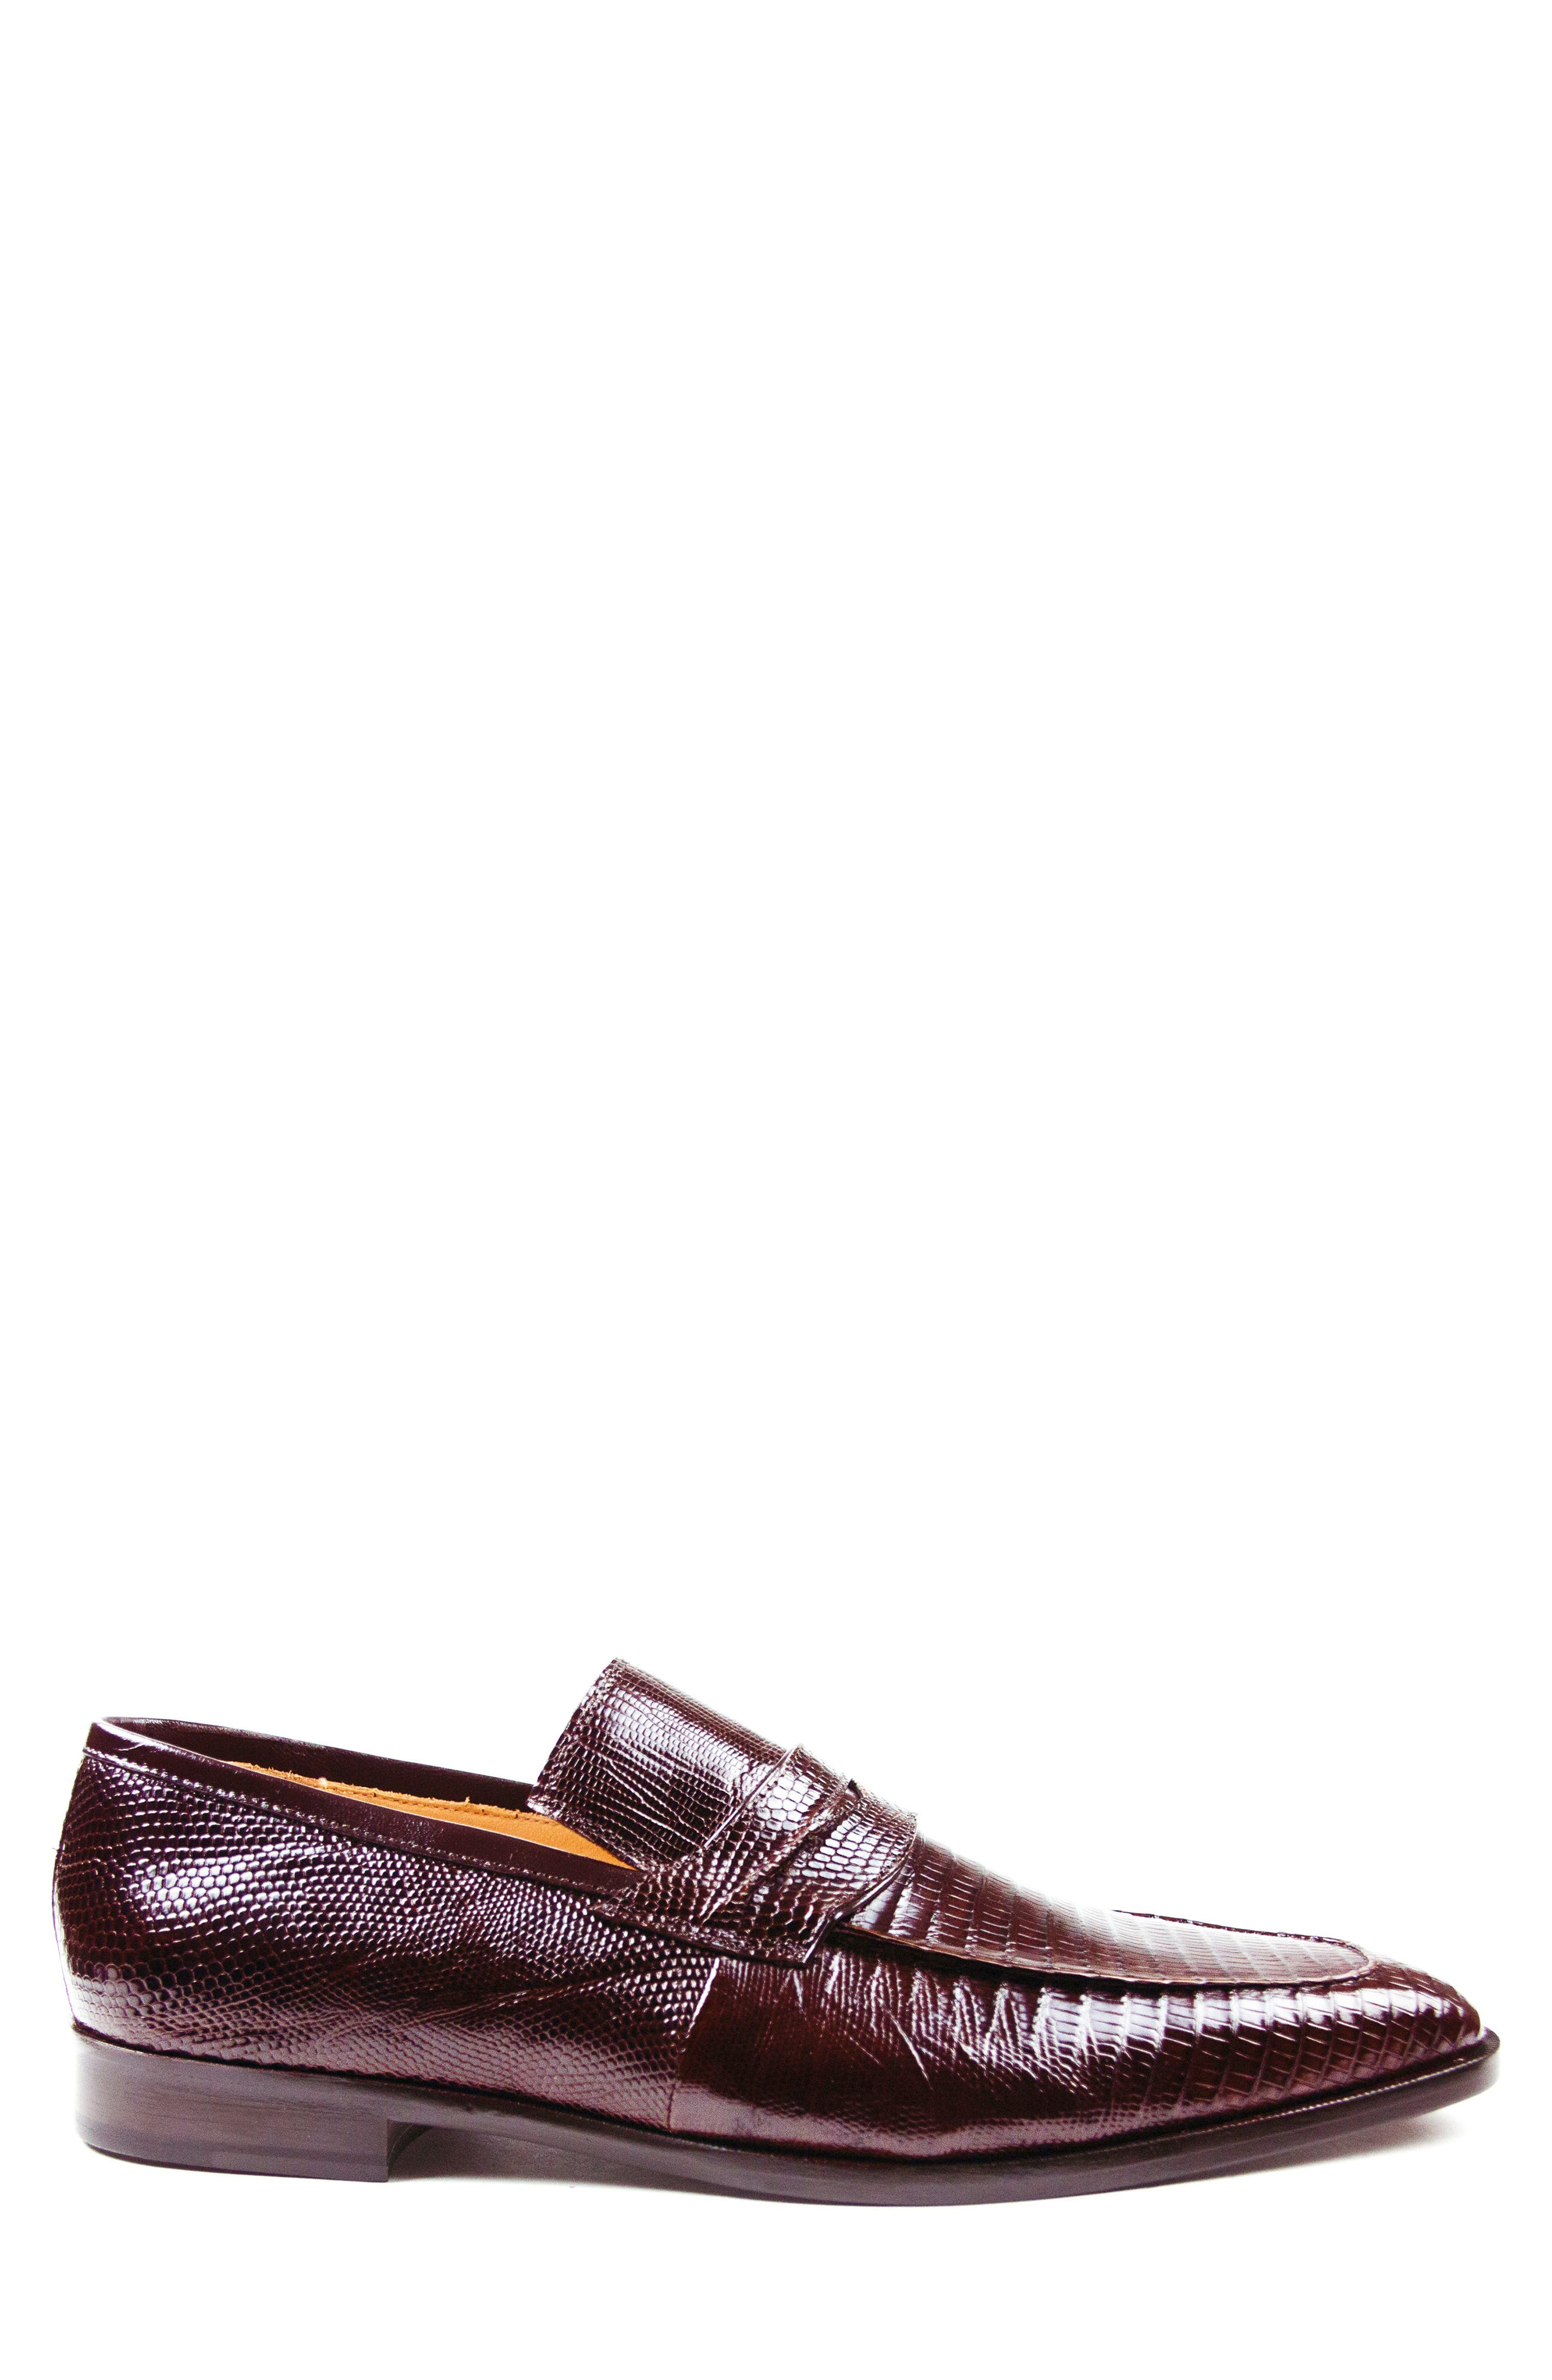 Meo Penny Loafer,                             Alternate thumbnail 3, color,                             201